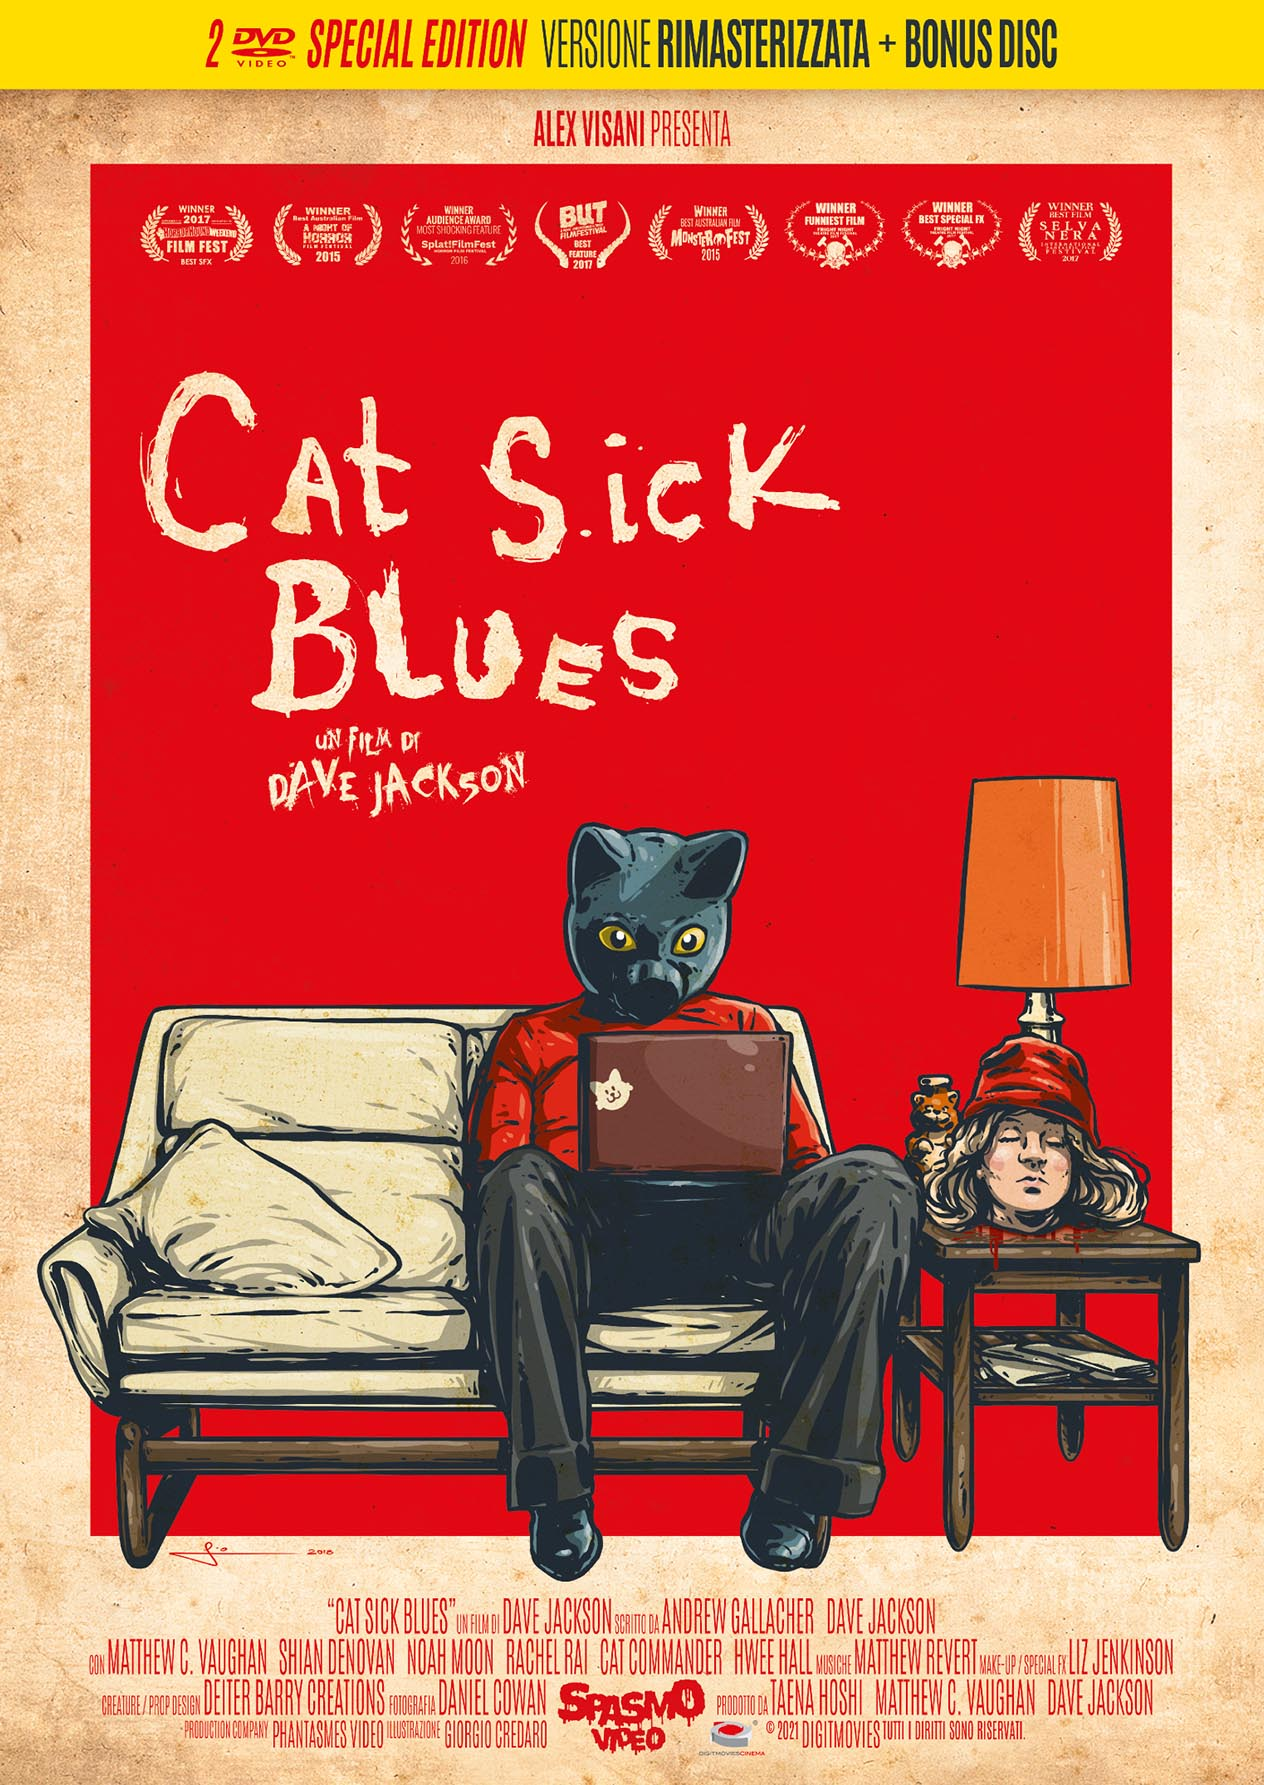 CAT SICK BLUES (SPECIAL EDITION) (2 DVD) (DVD)